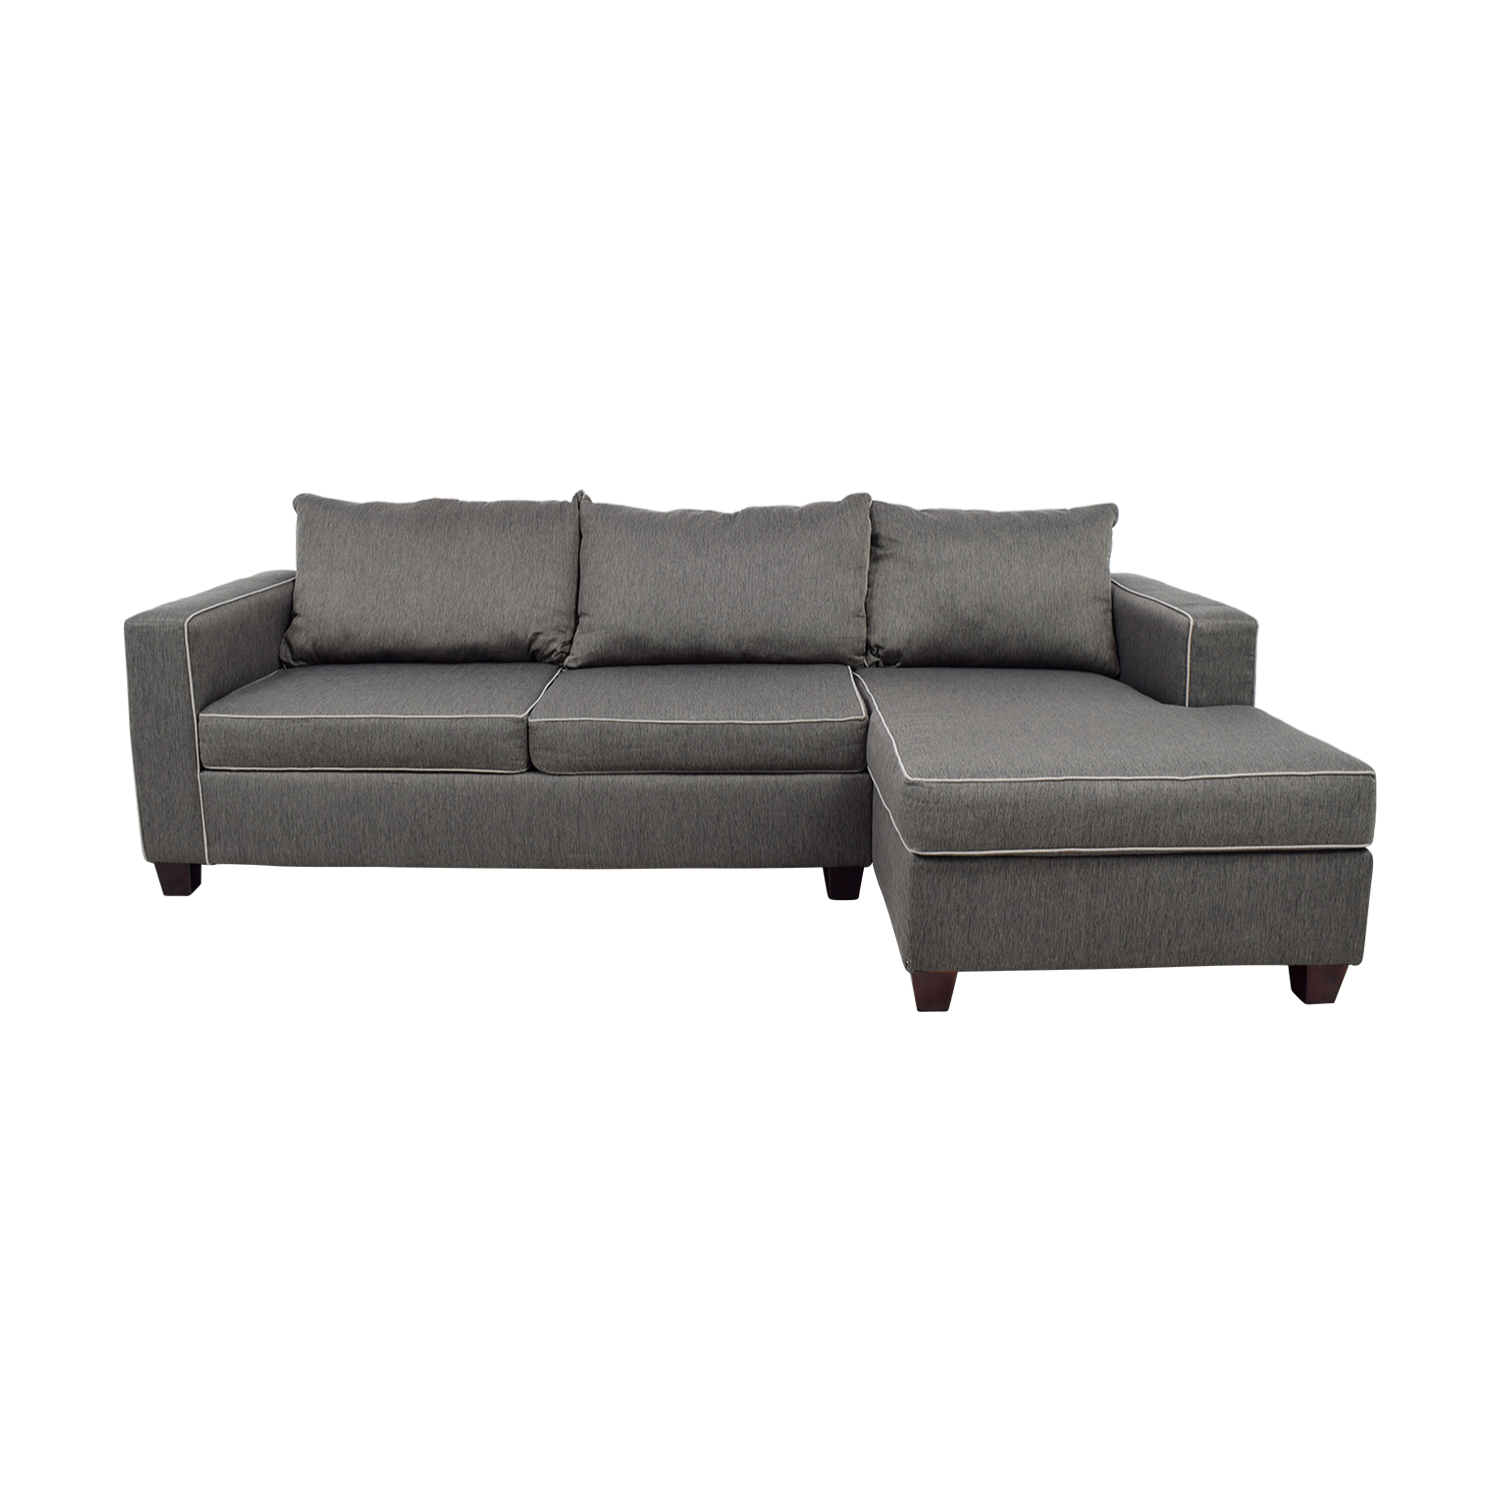 56 Off Bob S Discount Furniture Bob S Furniture Alex Grey Chaise Sectional Sofas